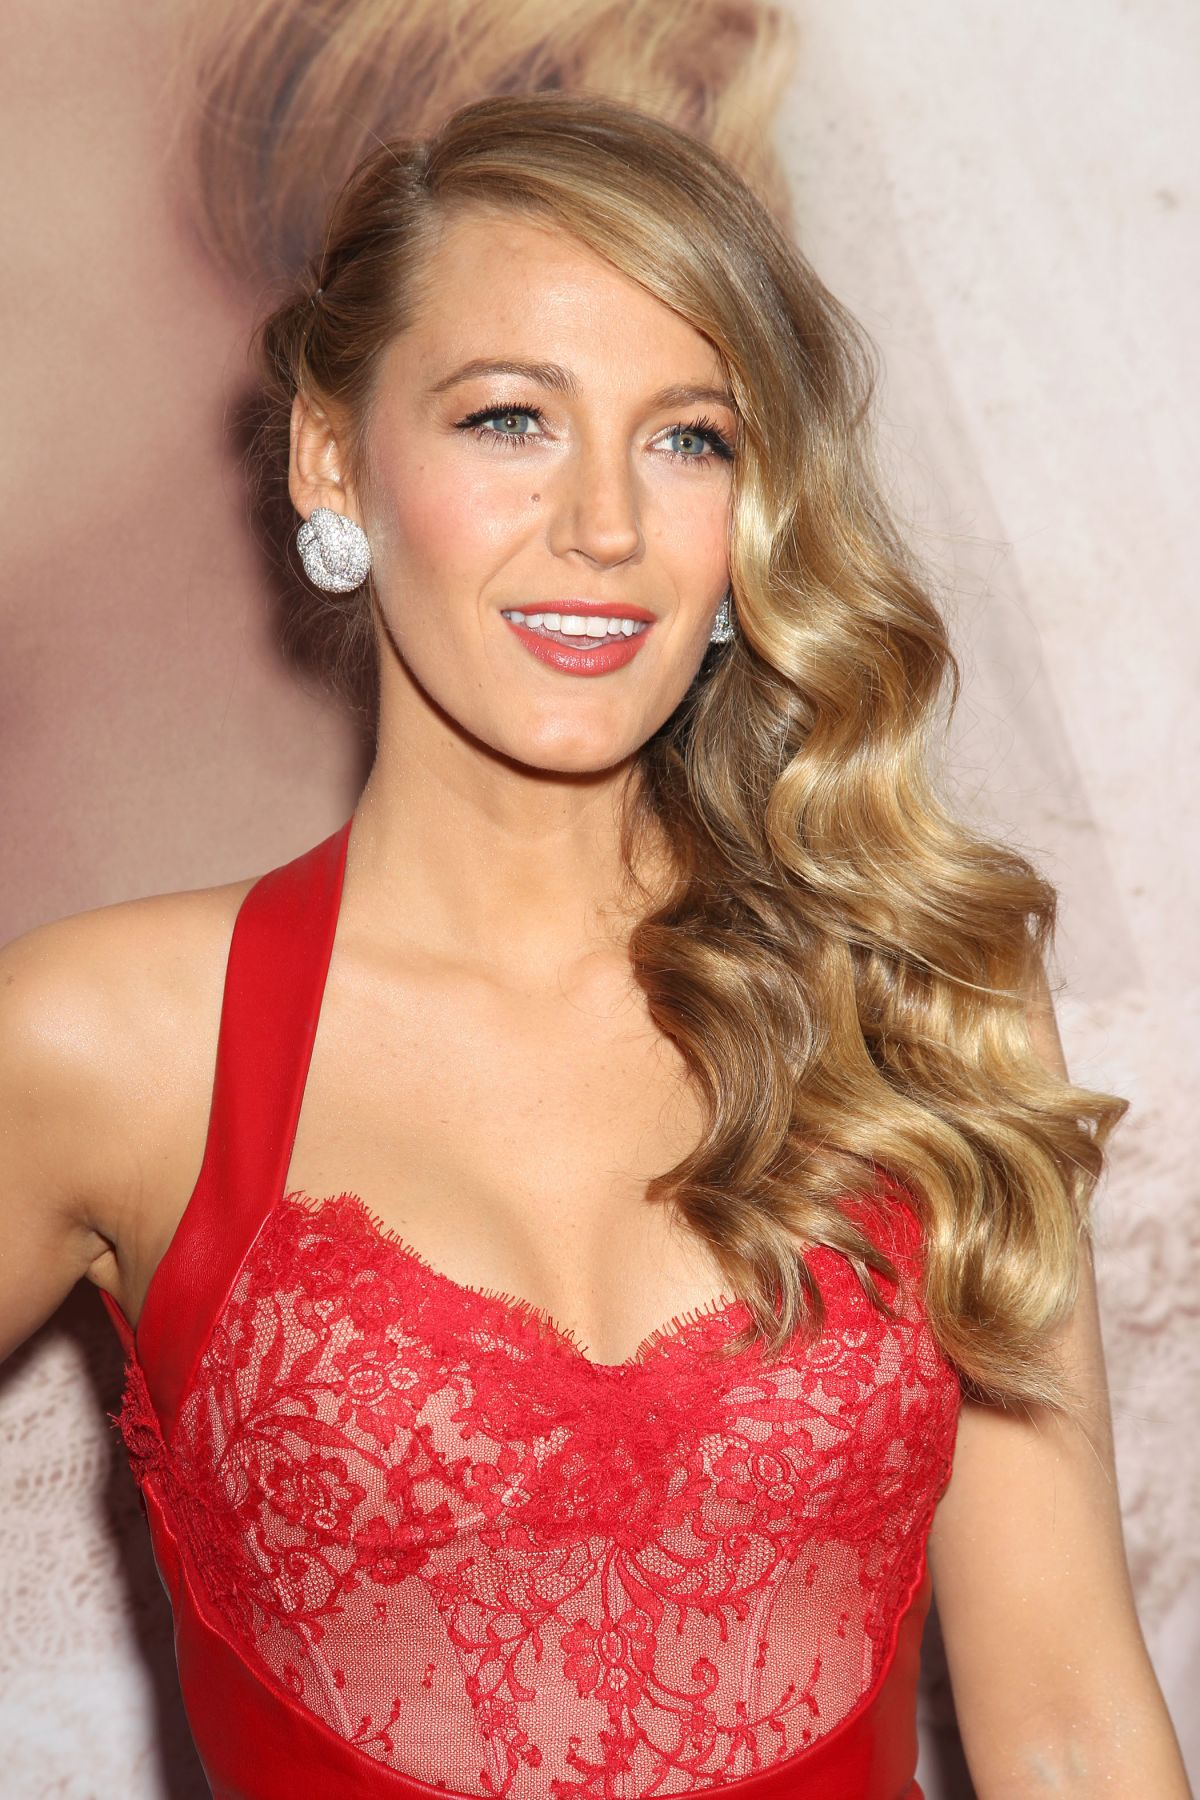 BLAKE LIVELY at The Age of Adaline Premiere in New York - HawtCelebs ... Blake Lively